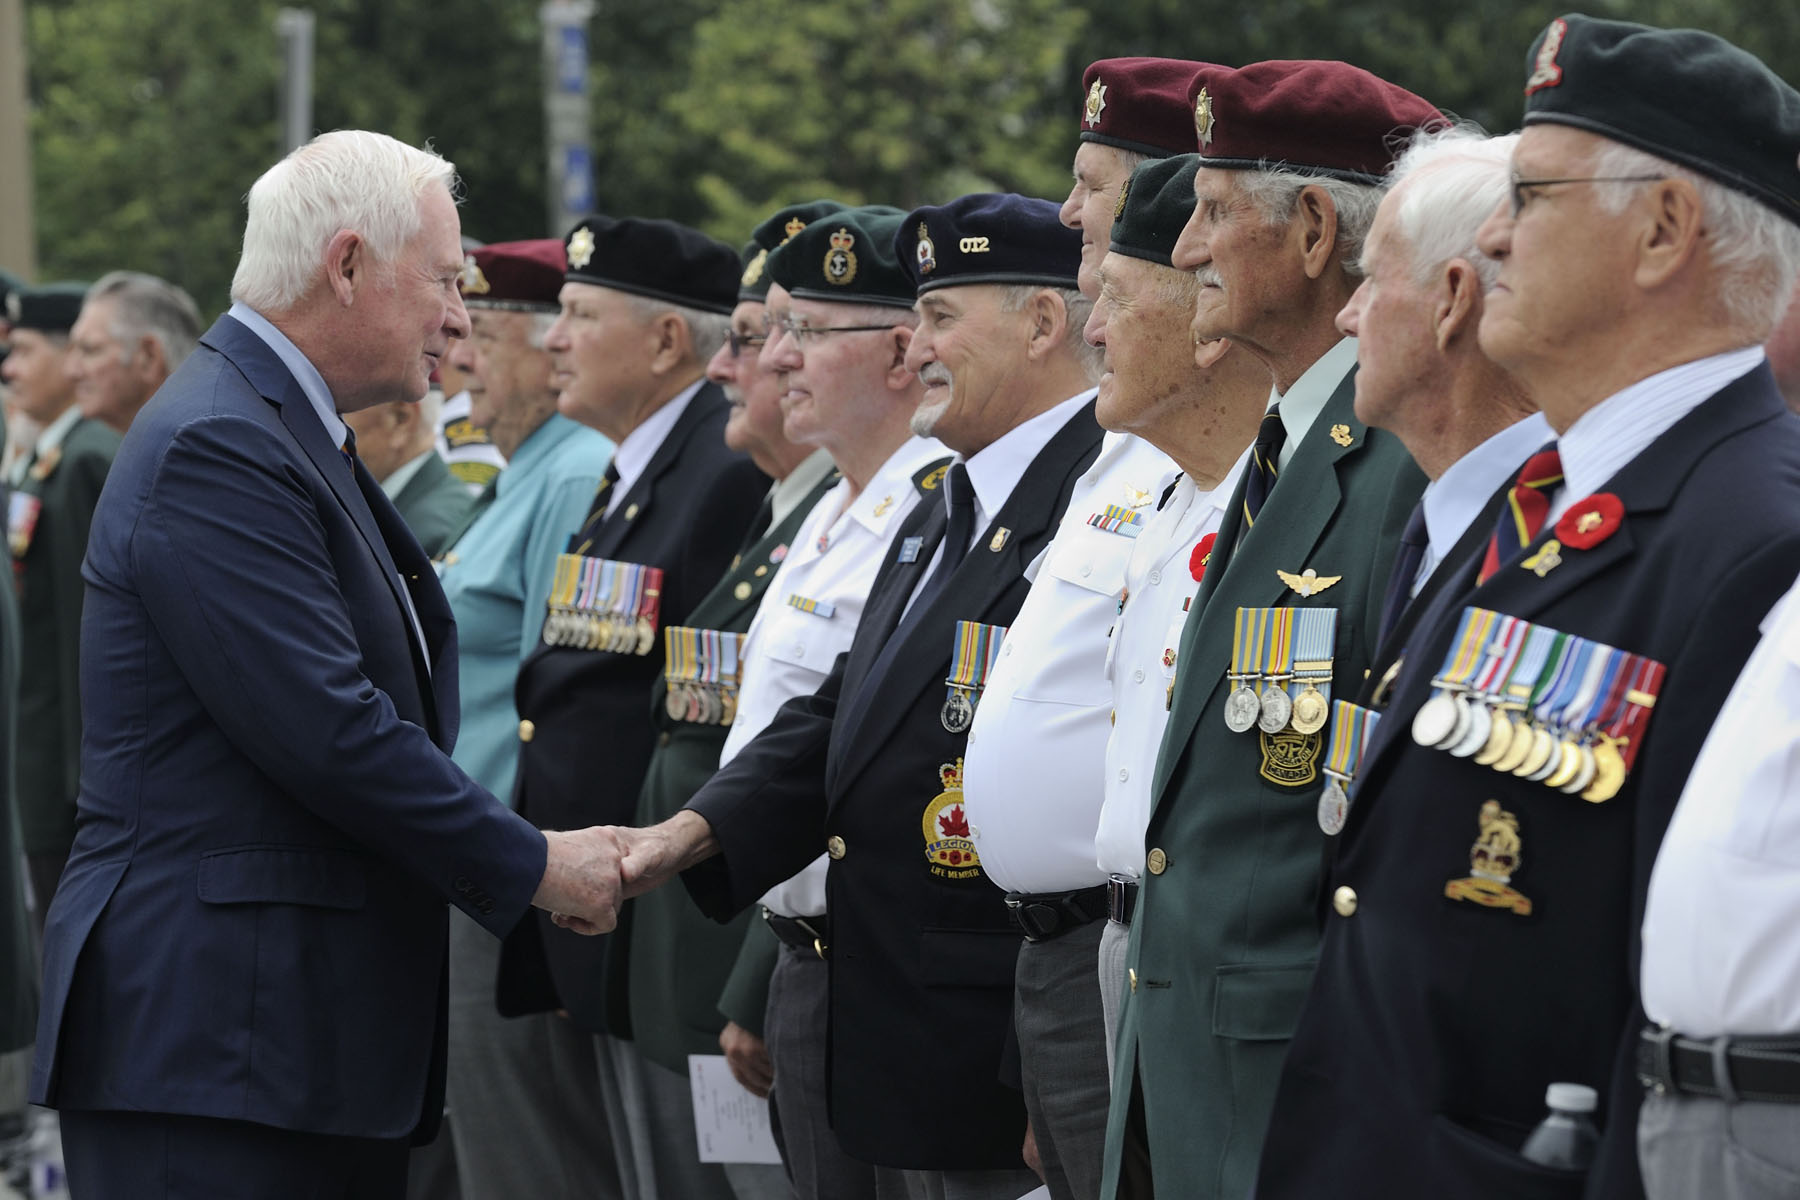 During the ceremony, the Governor General inspected the ranks of veterans. On June 25, 1950, armed forces from North Korea crossed the 38th parallel into the Republic of Korea, marking the beginning of hostilities throughout the country. More than 26,000 Canadian men and women joined combat forces from 15 other United Nations countries sent to Korea to restore peace.